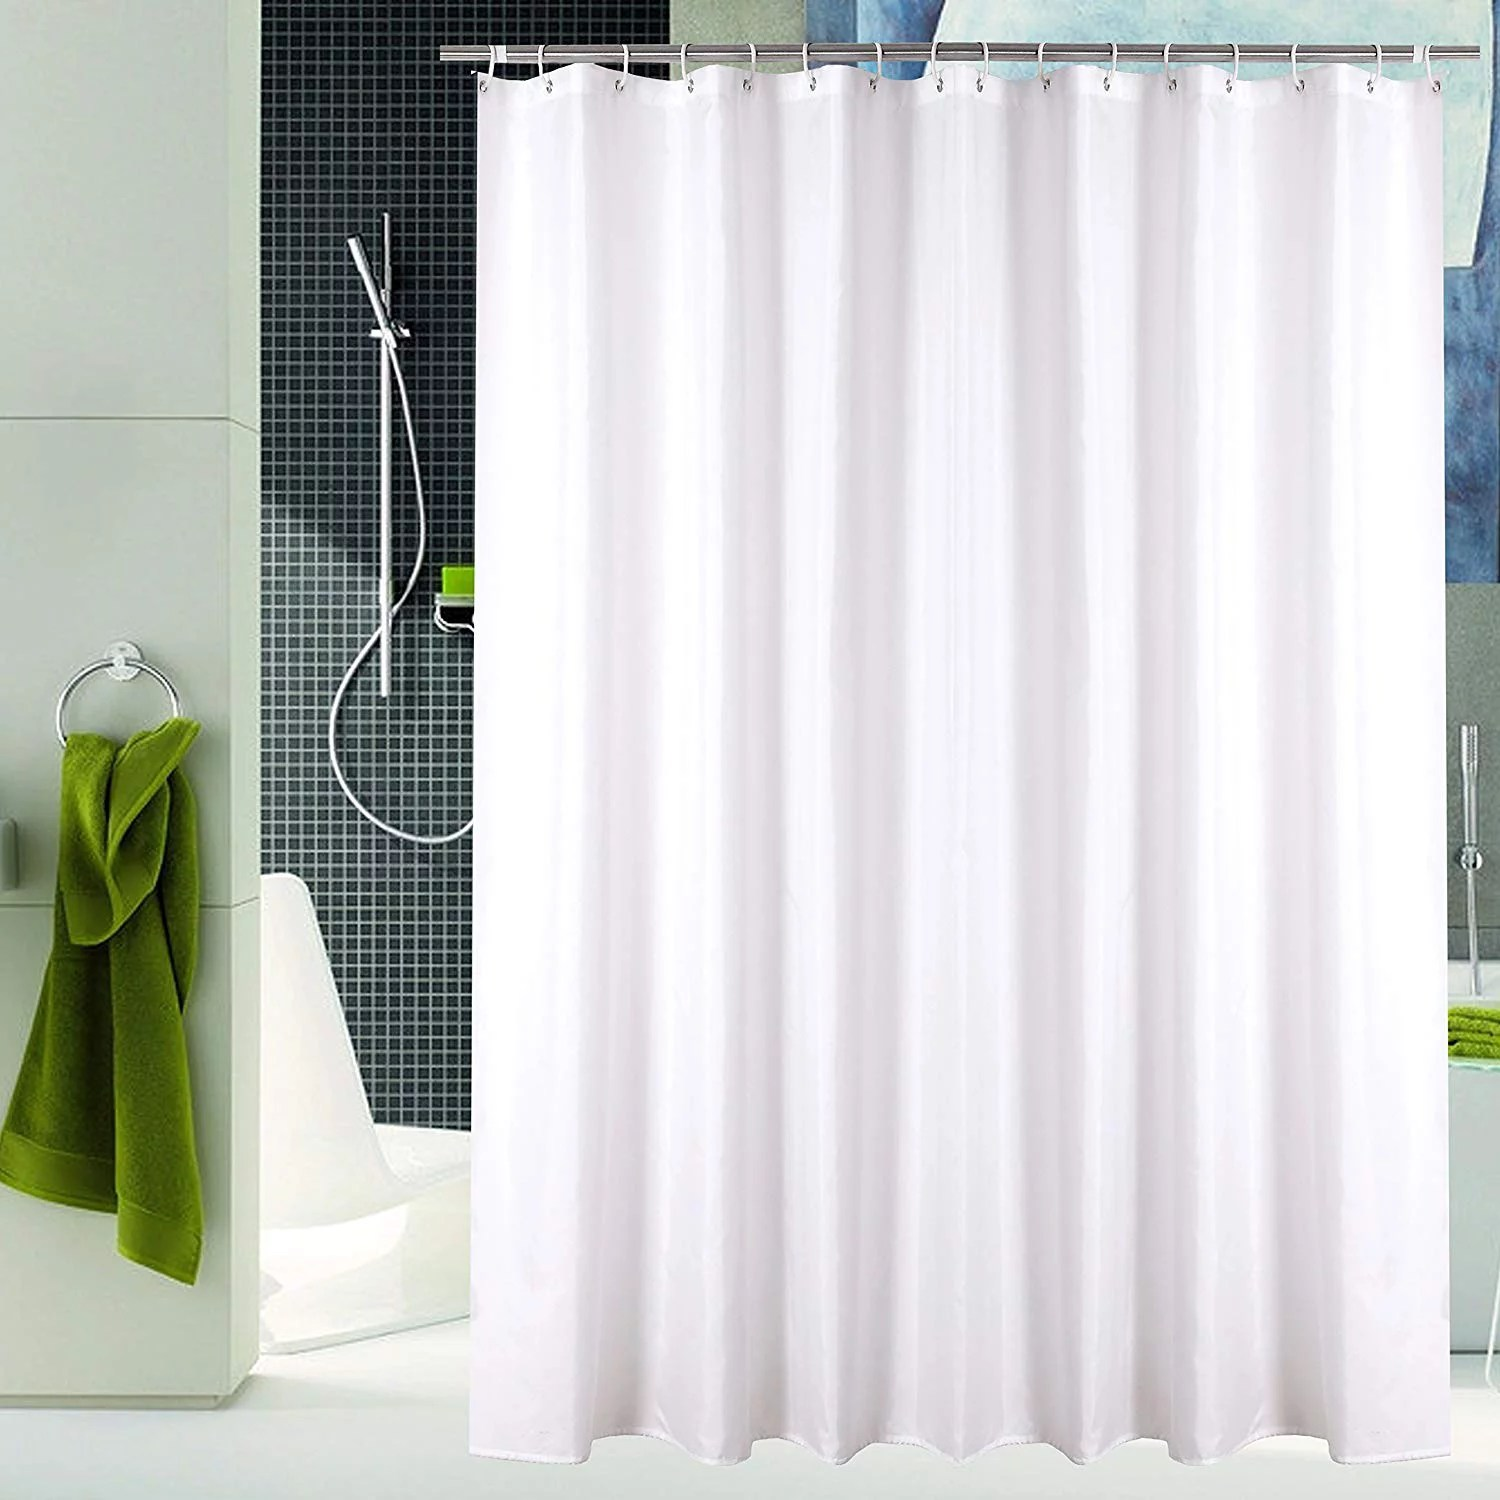 yuunity mildew resistant polyester fabric shower curtain with hooks waterproof non toxic eco friendly washable walmart com